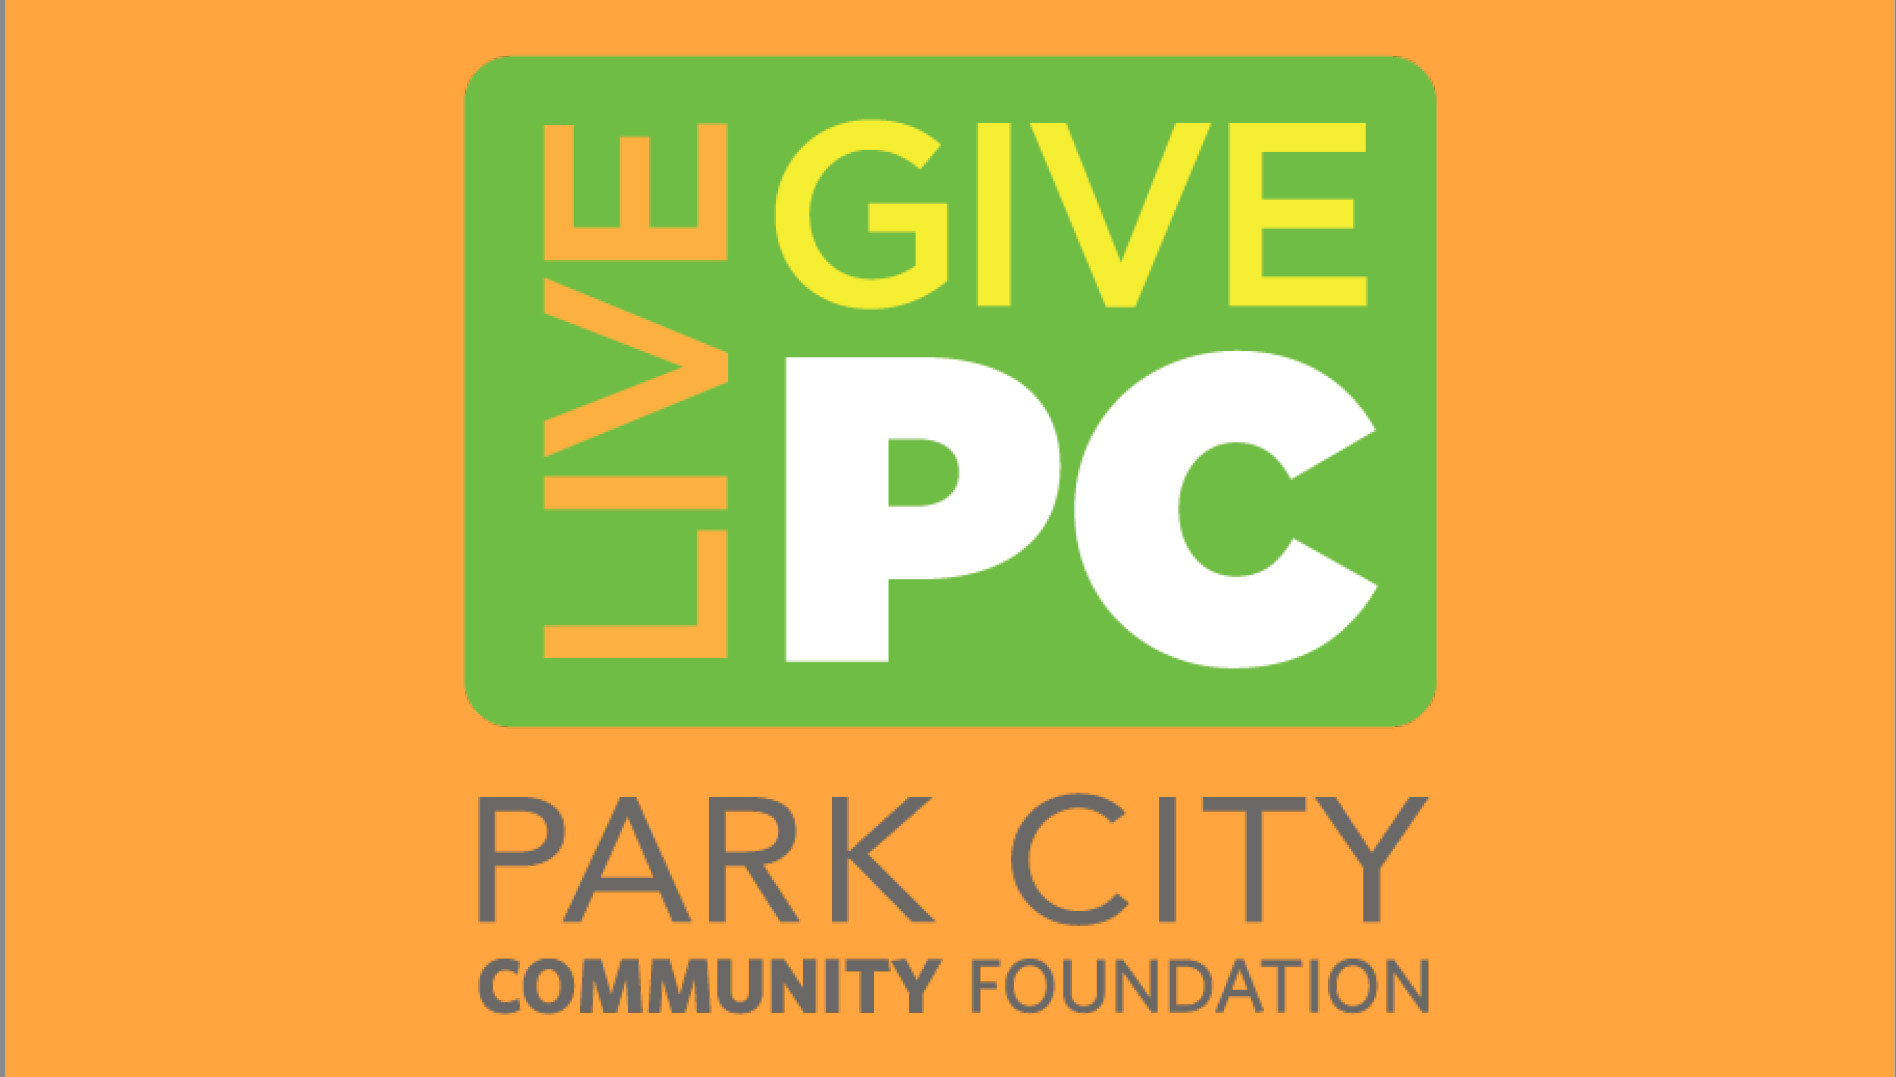 Live PC Give PC is This Friday